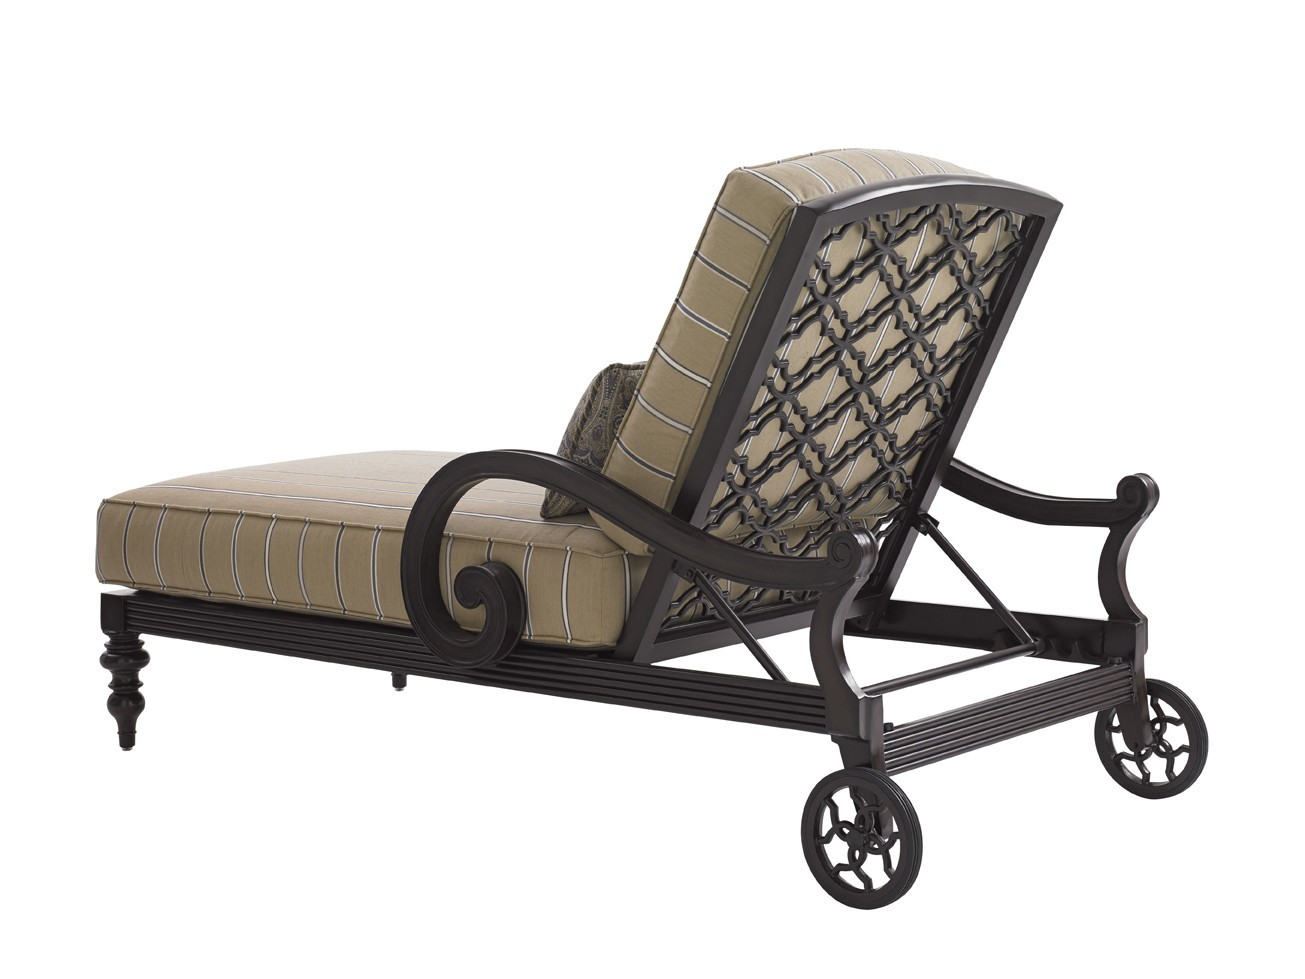 Royal kahala black sands chaise lounge hauser 39 s patio for Black metal chaise lounge outdoor